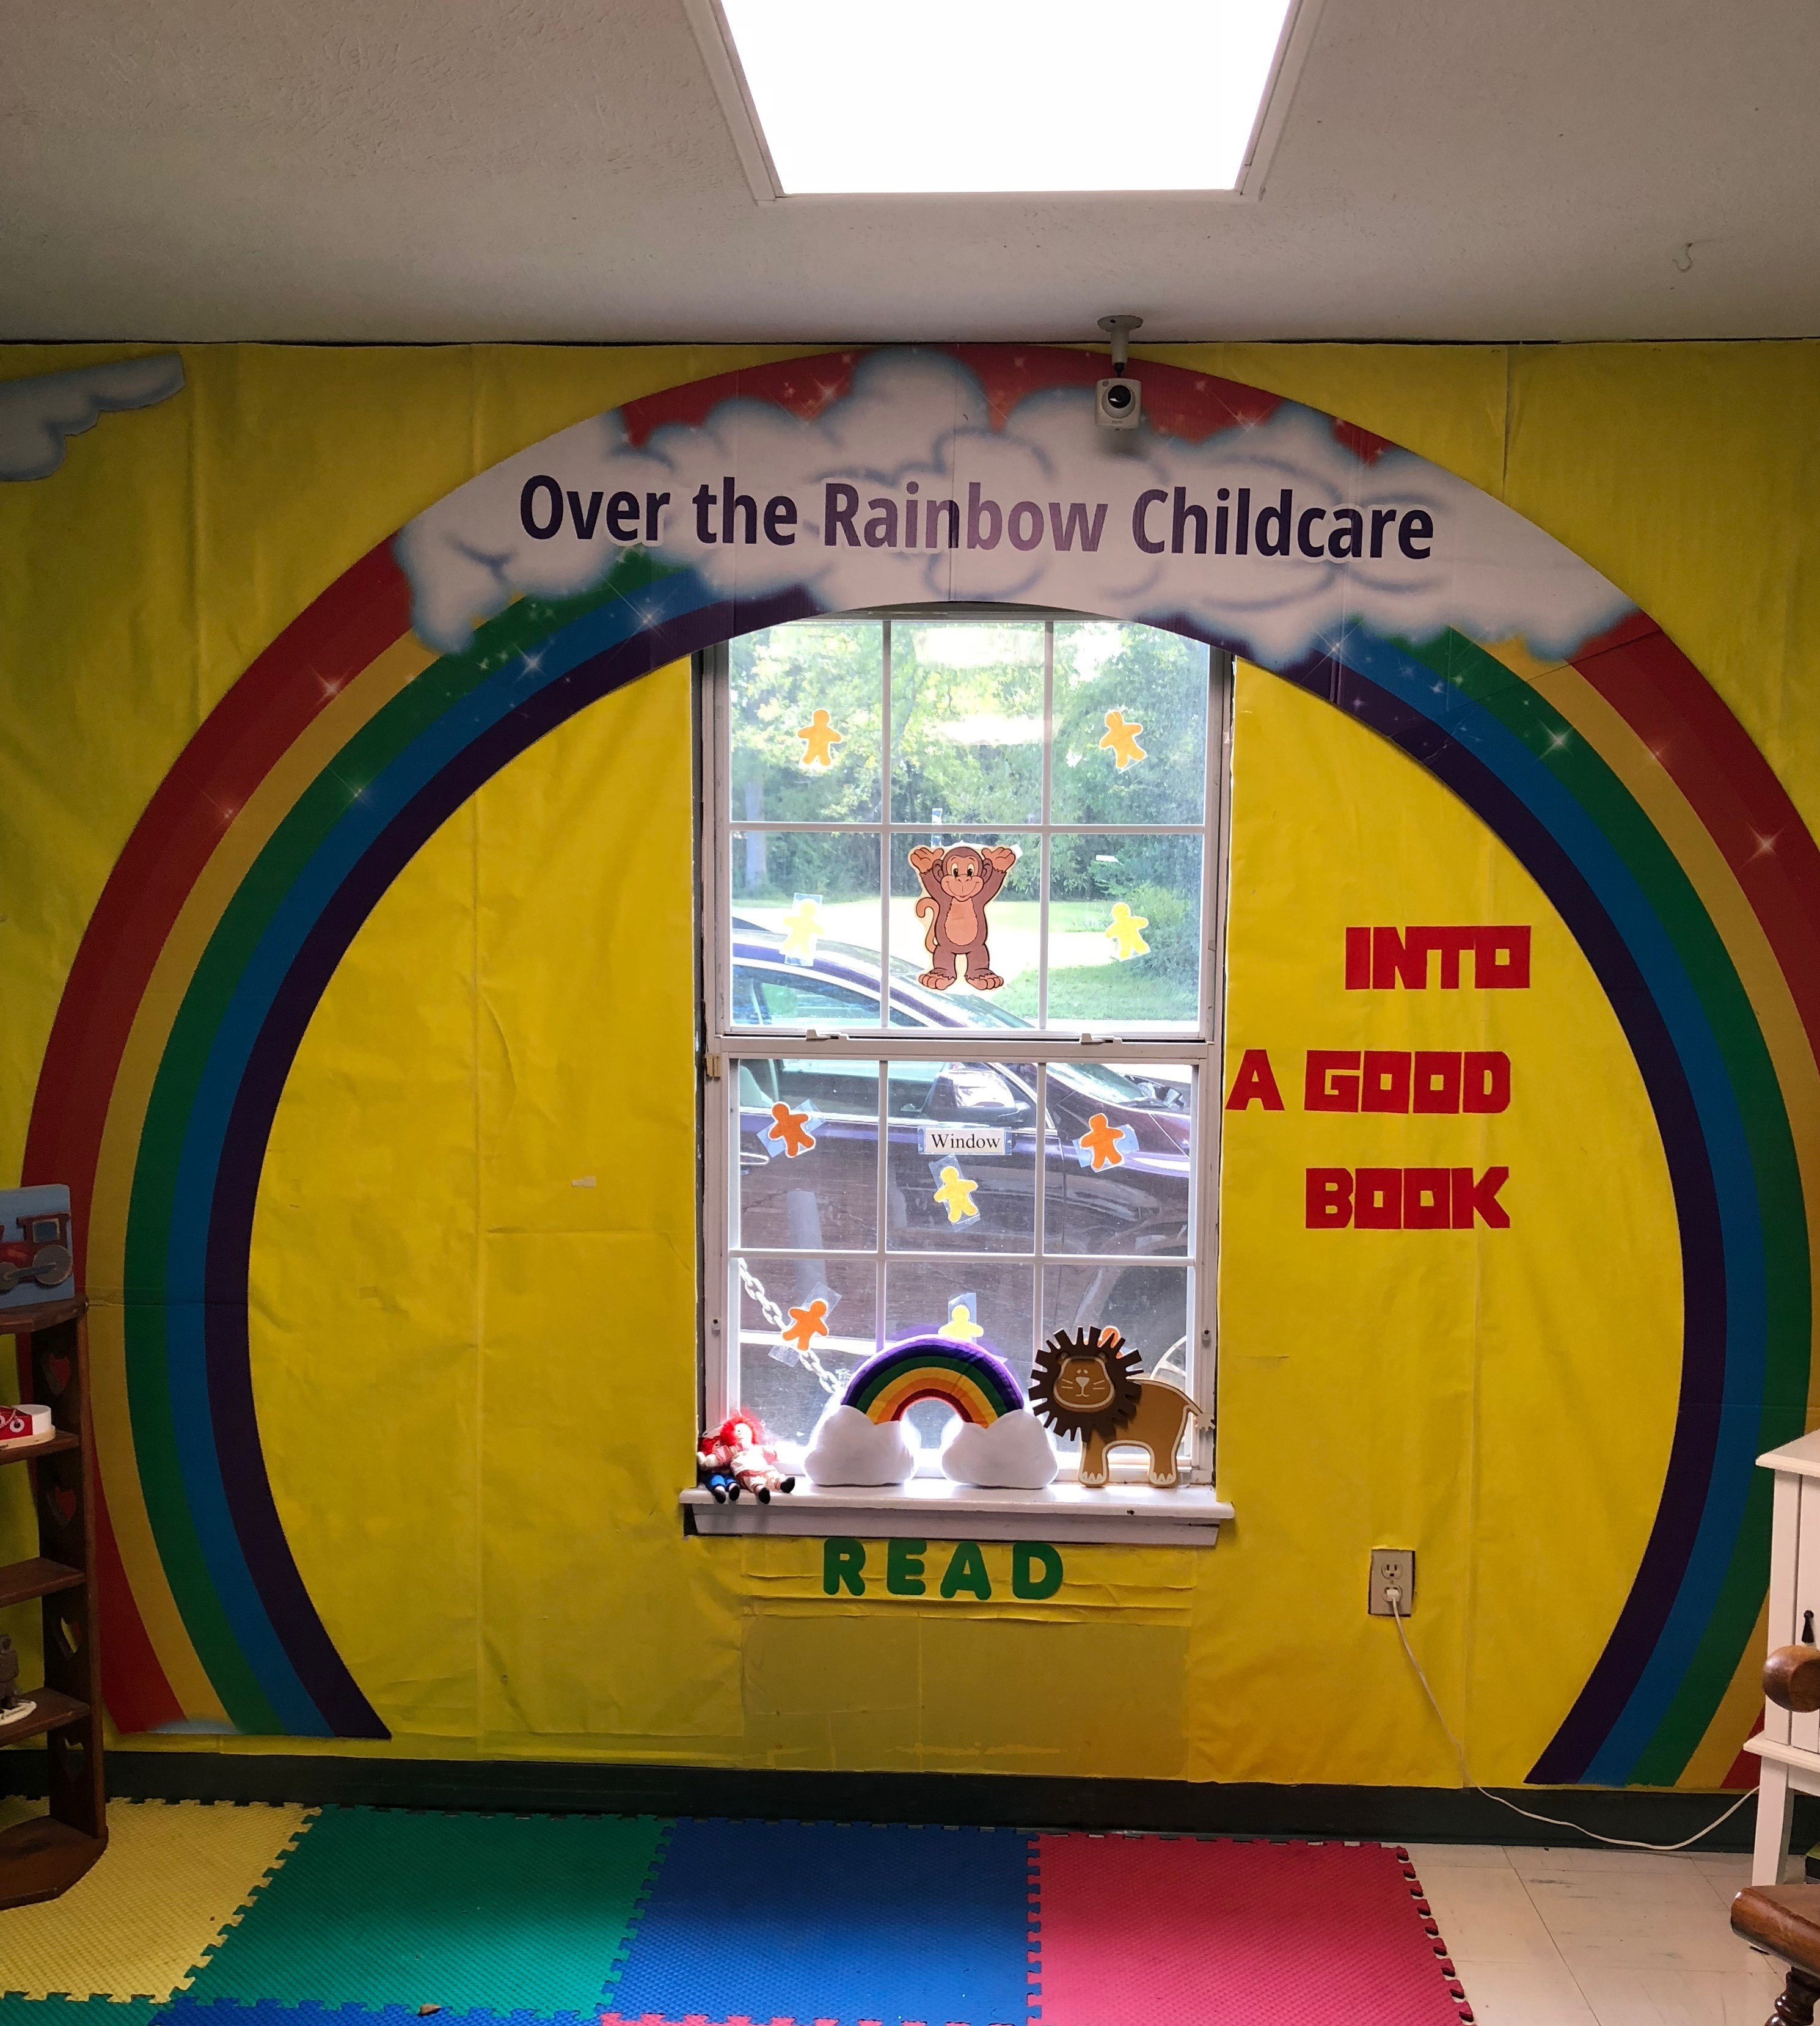 Over the Rainbow Childcare Center